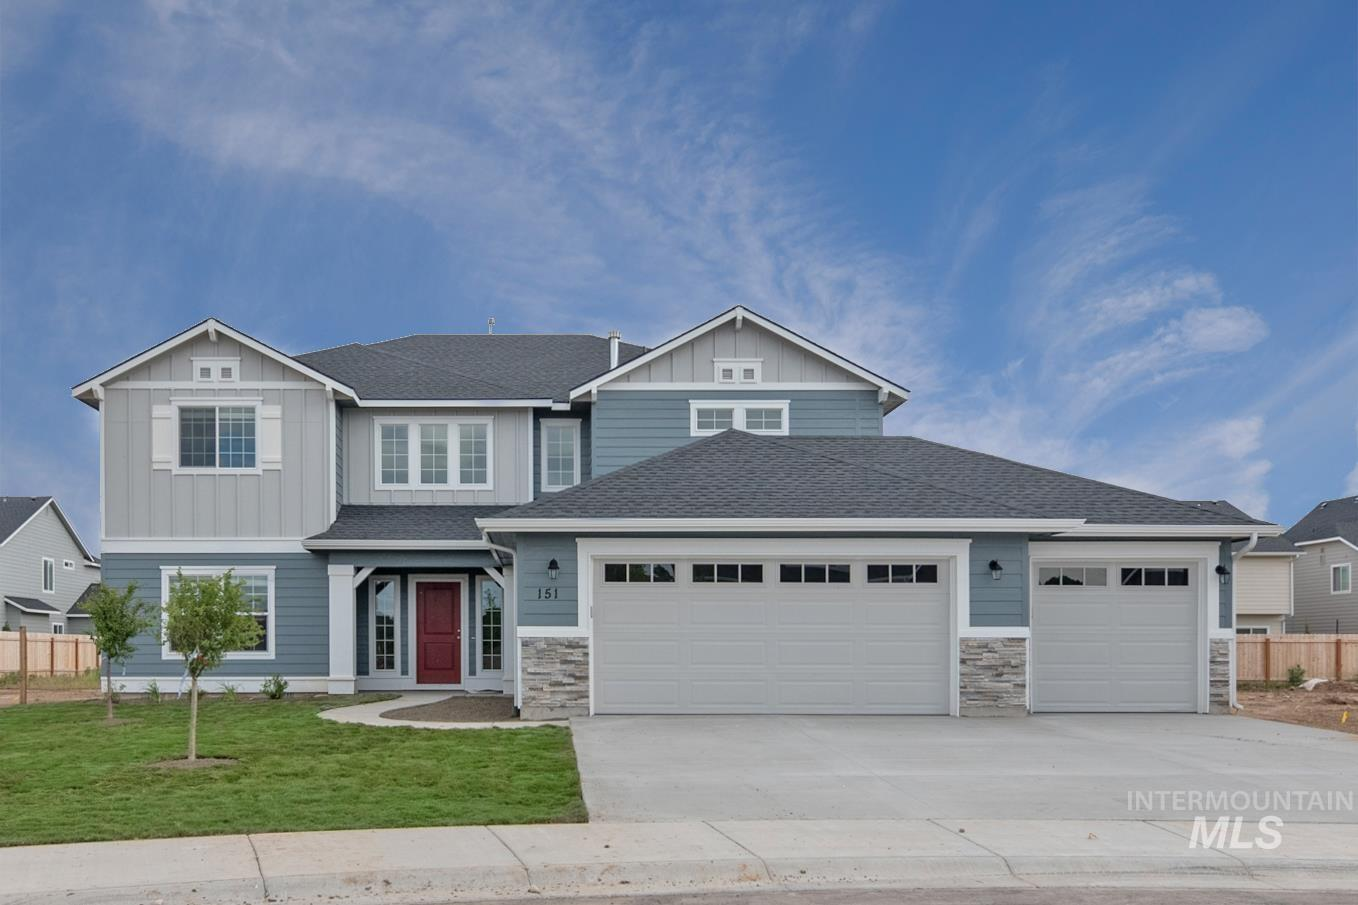 4996 W Sands Basin Dr Property Photo - Meridian, ID real estate listing